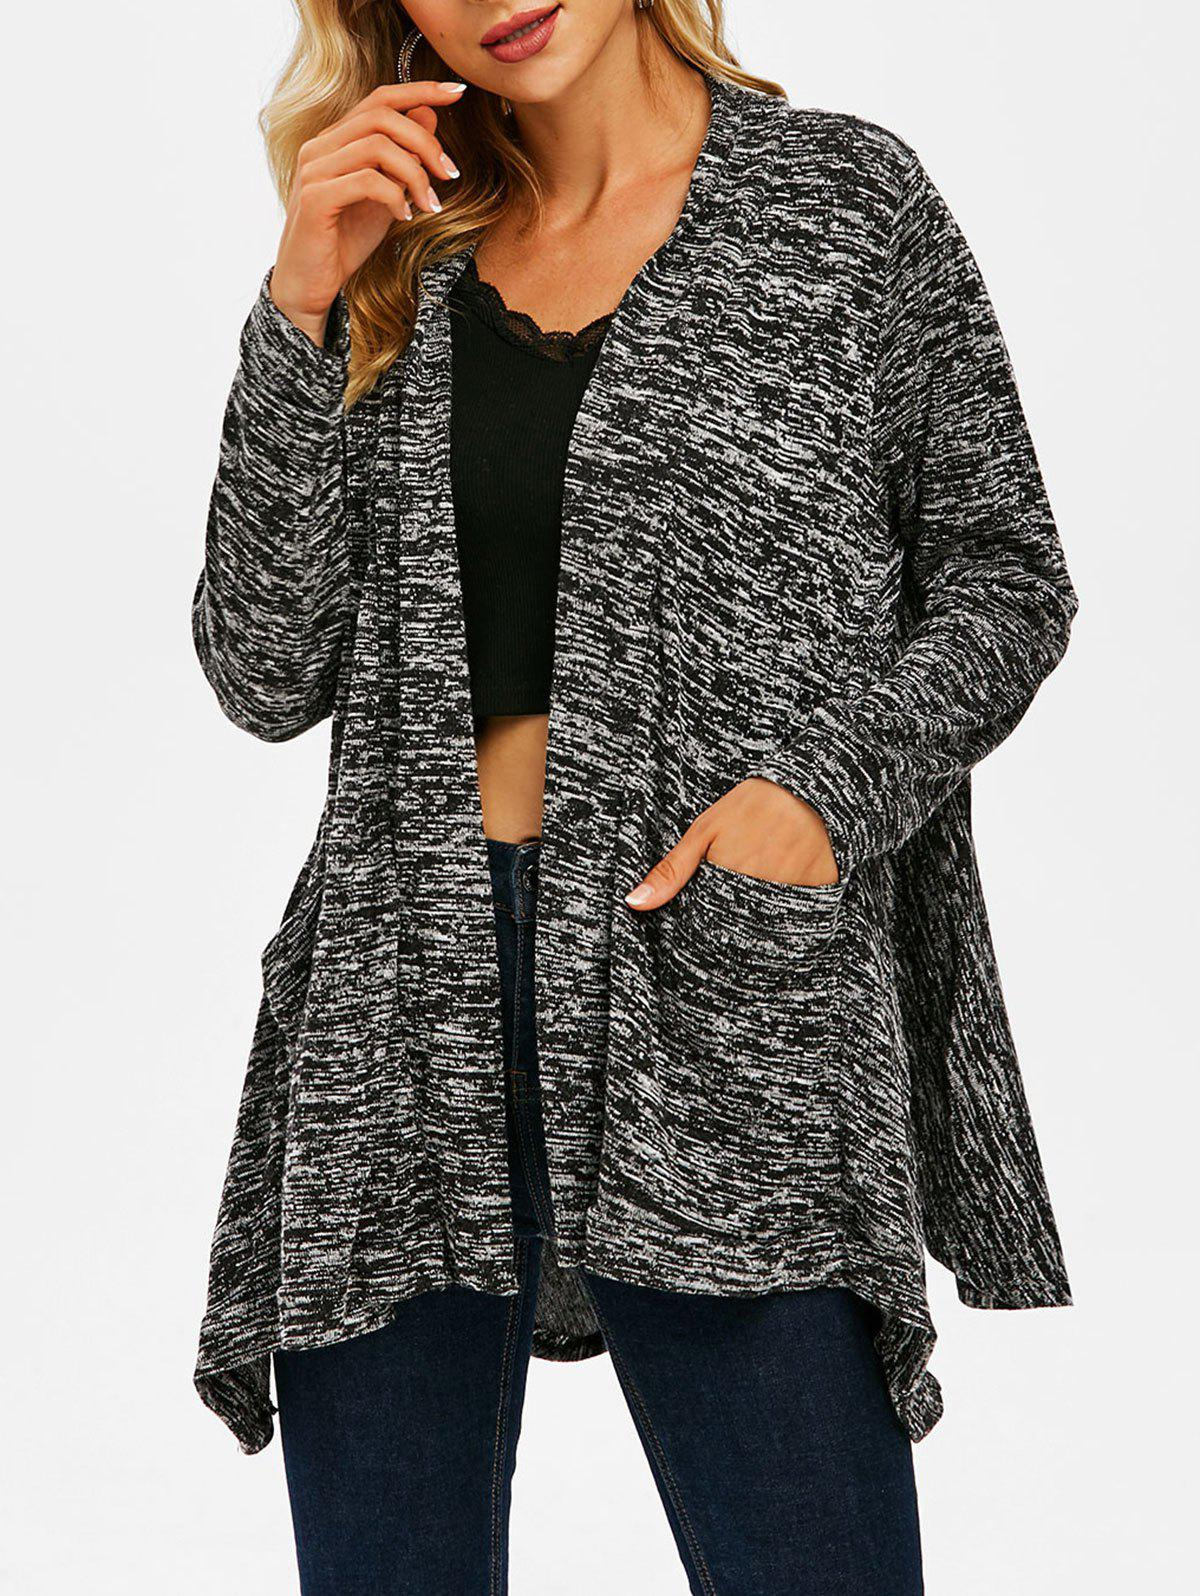 Heather Pocket Open Front Asymmetrical Cardigan - GRAY L